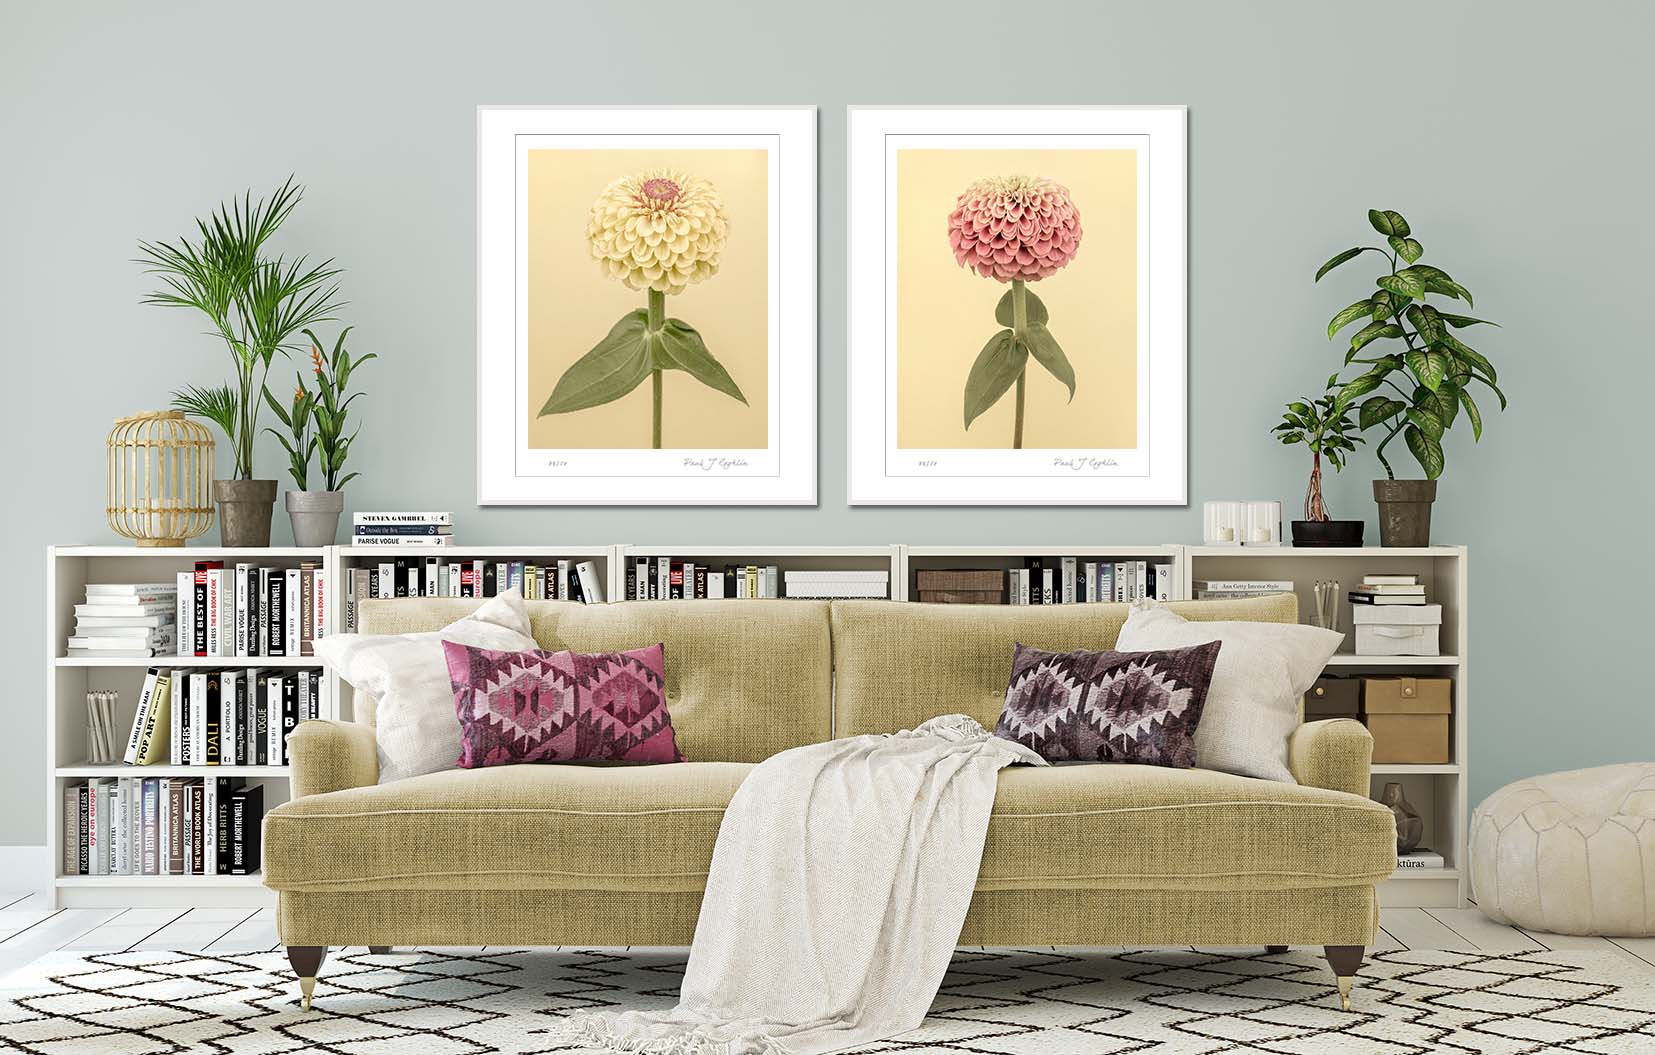 Two Zinnia flowers on a yellow background. Limited edition fine art prints by fine art photographer Paul Coghlin.